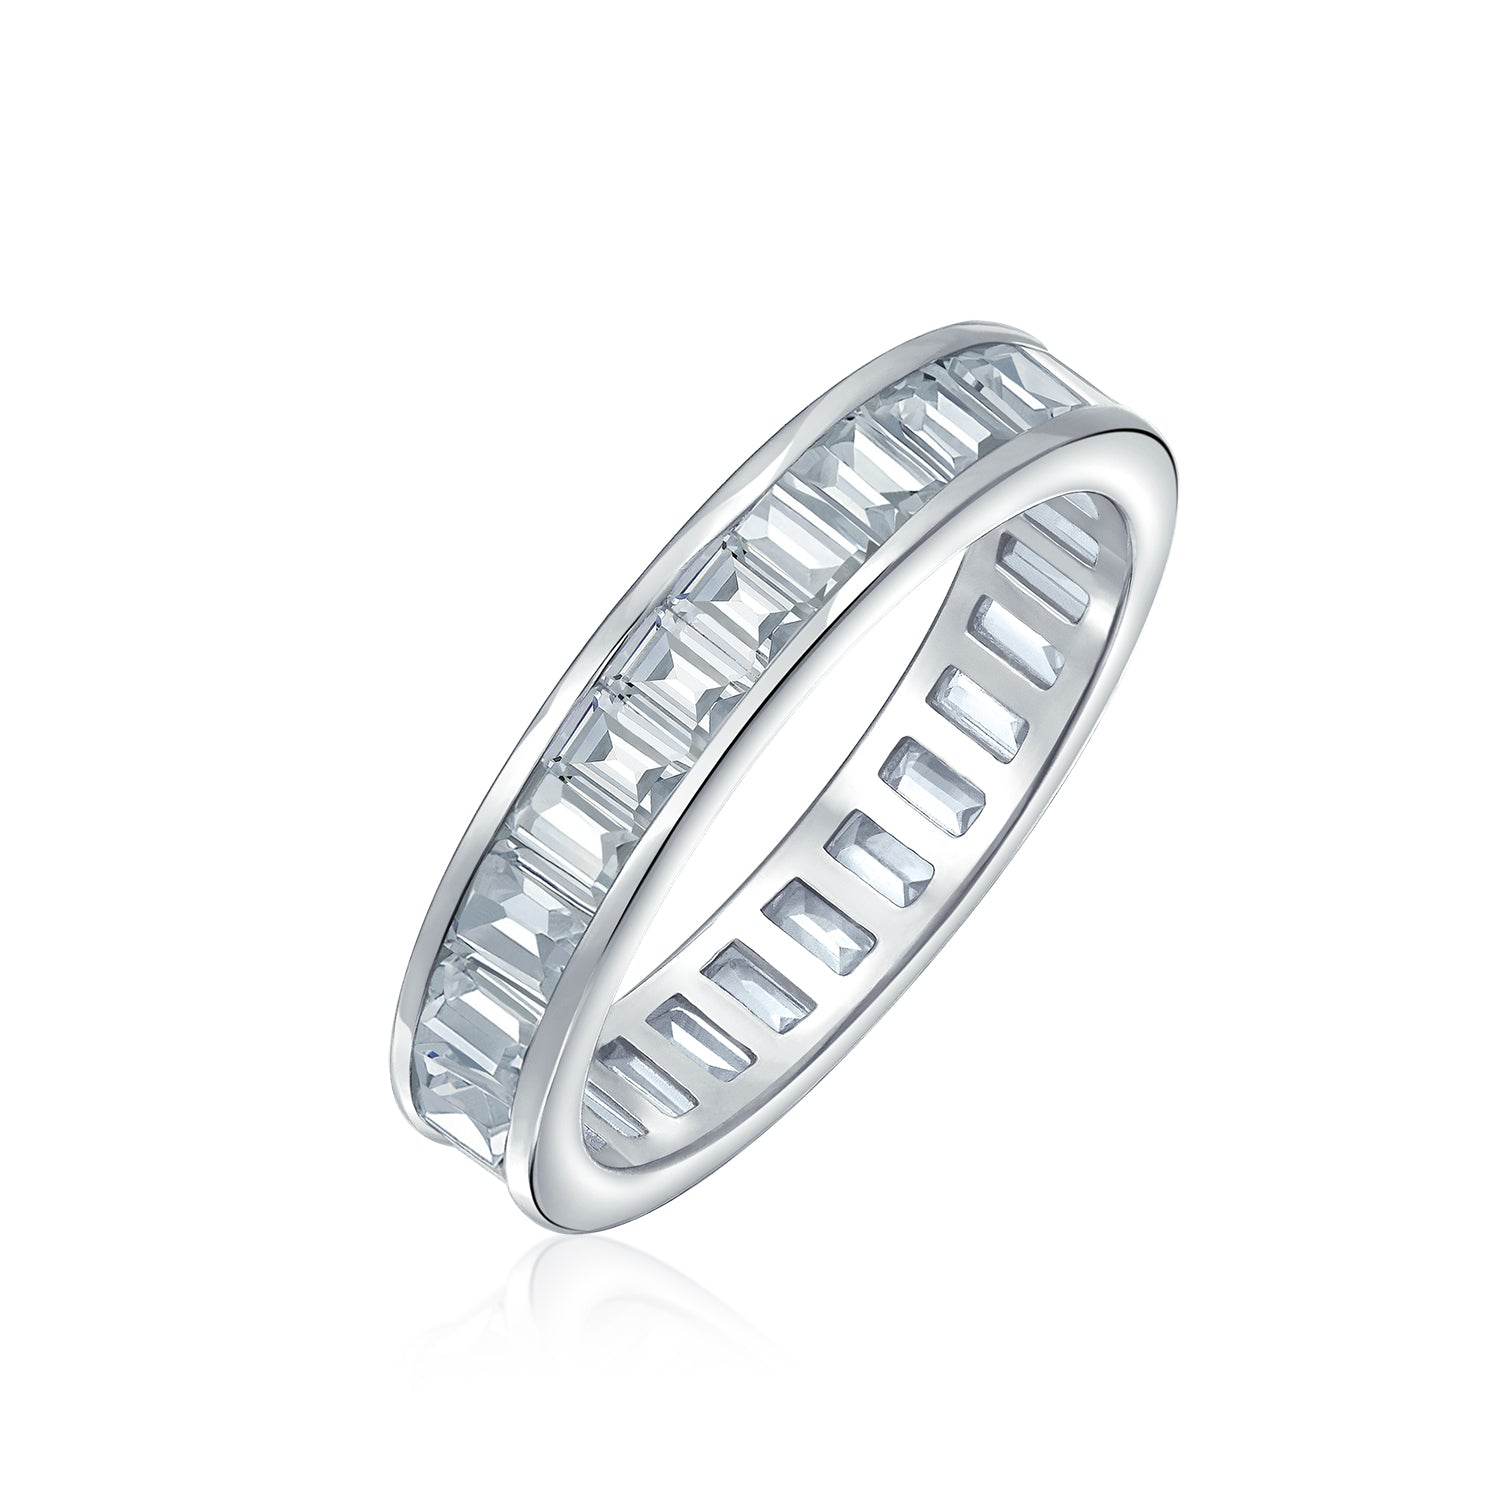 .925 Sterling Silver 3MM LADIES AND MEN/'S  WEDDING BAND DESIGN RING SIZES 3-12